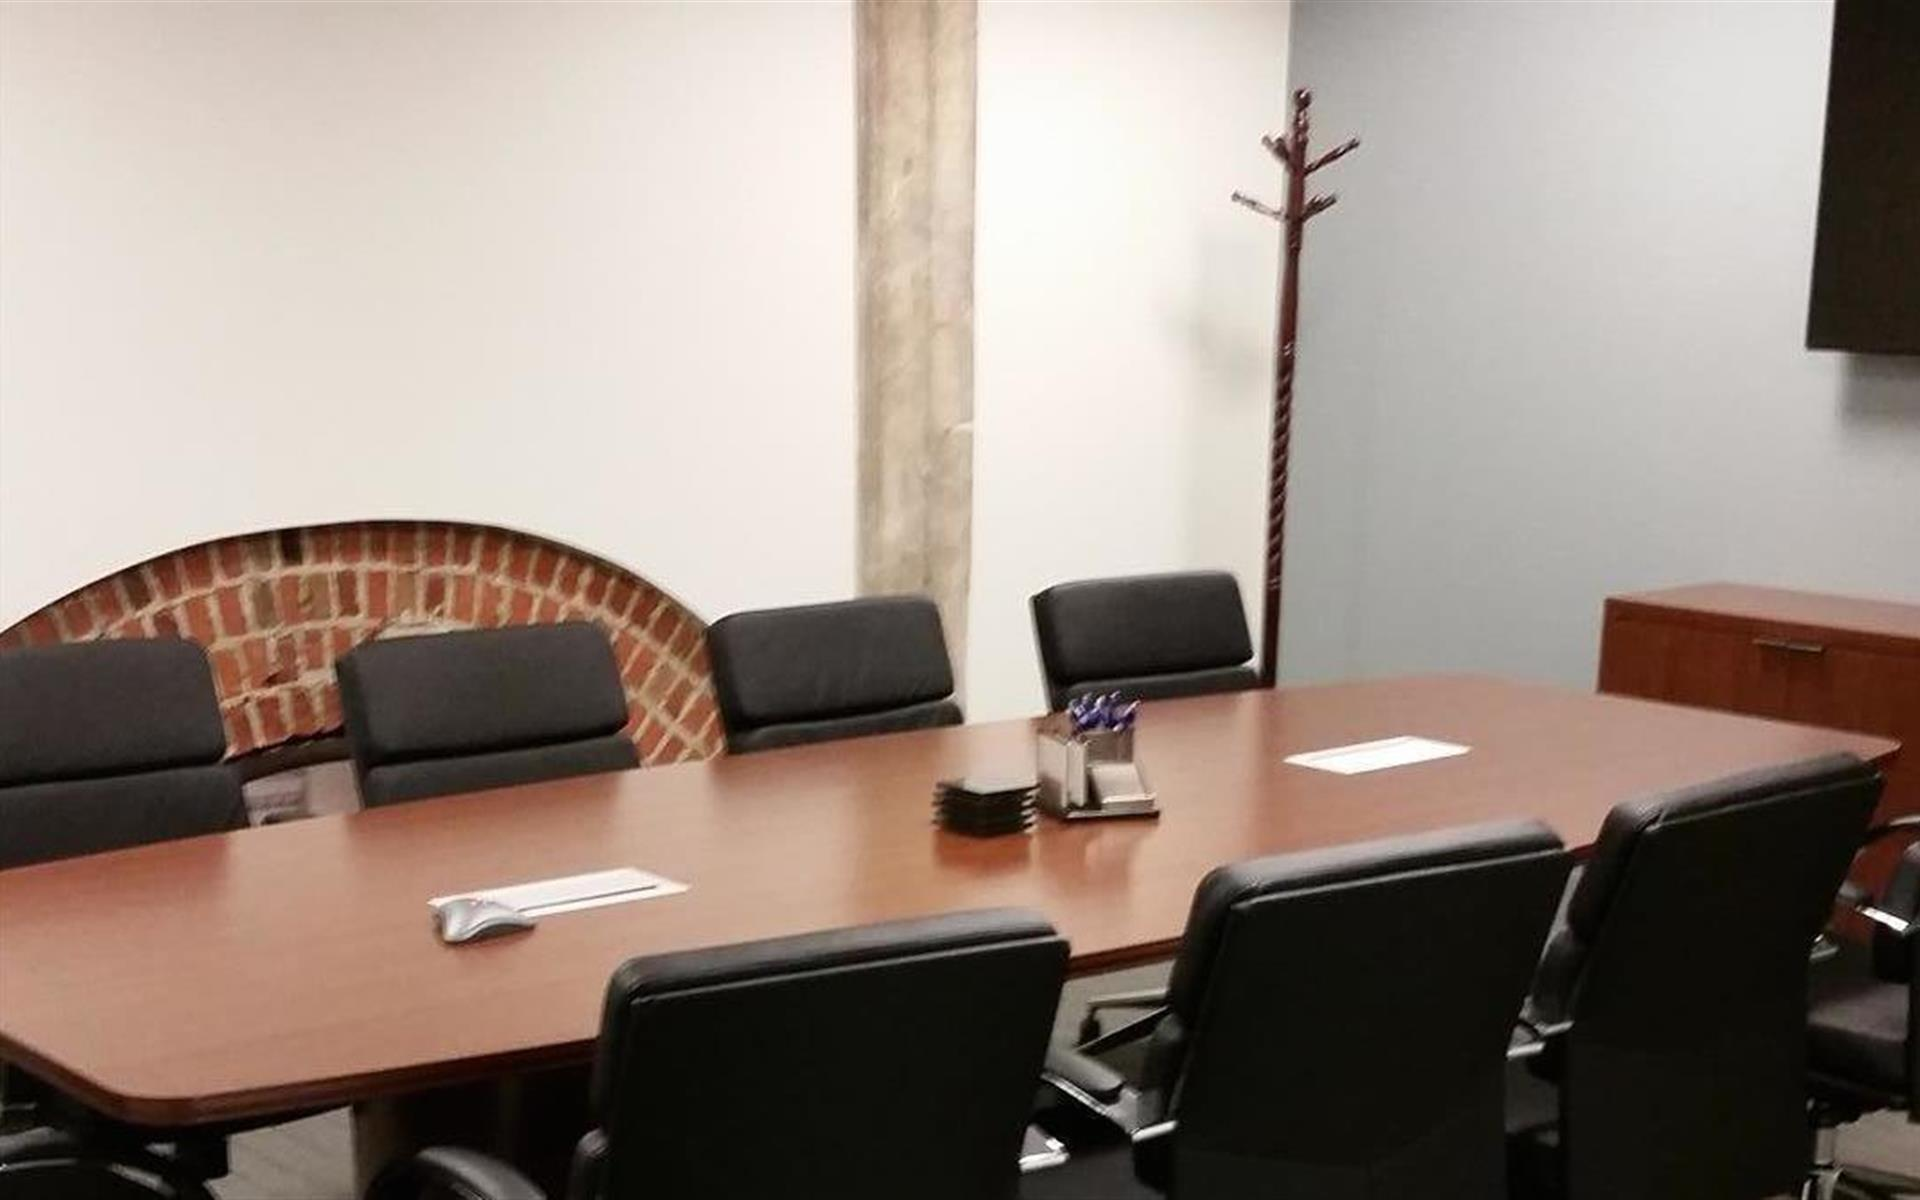 PacMutual Bldg. - First Legal Deposition - Videoconference Room - Large